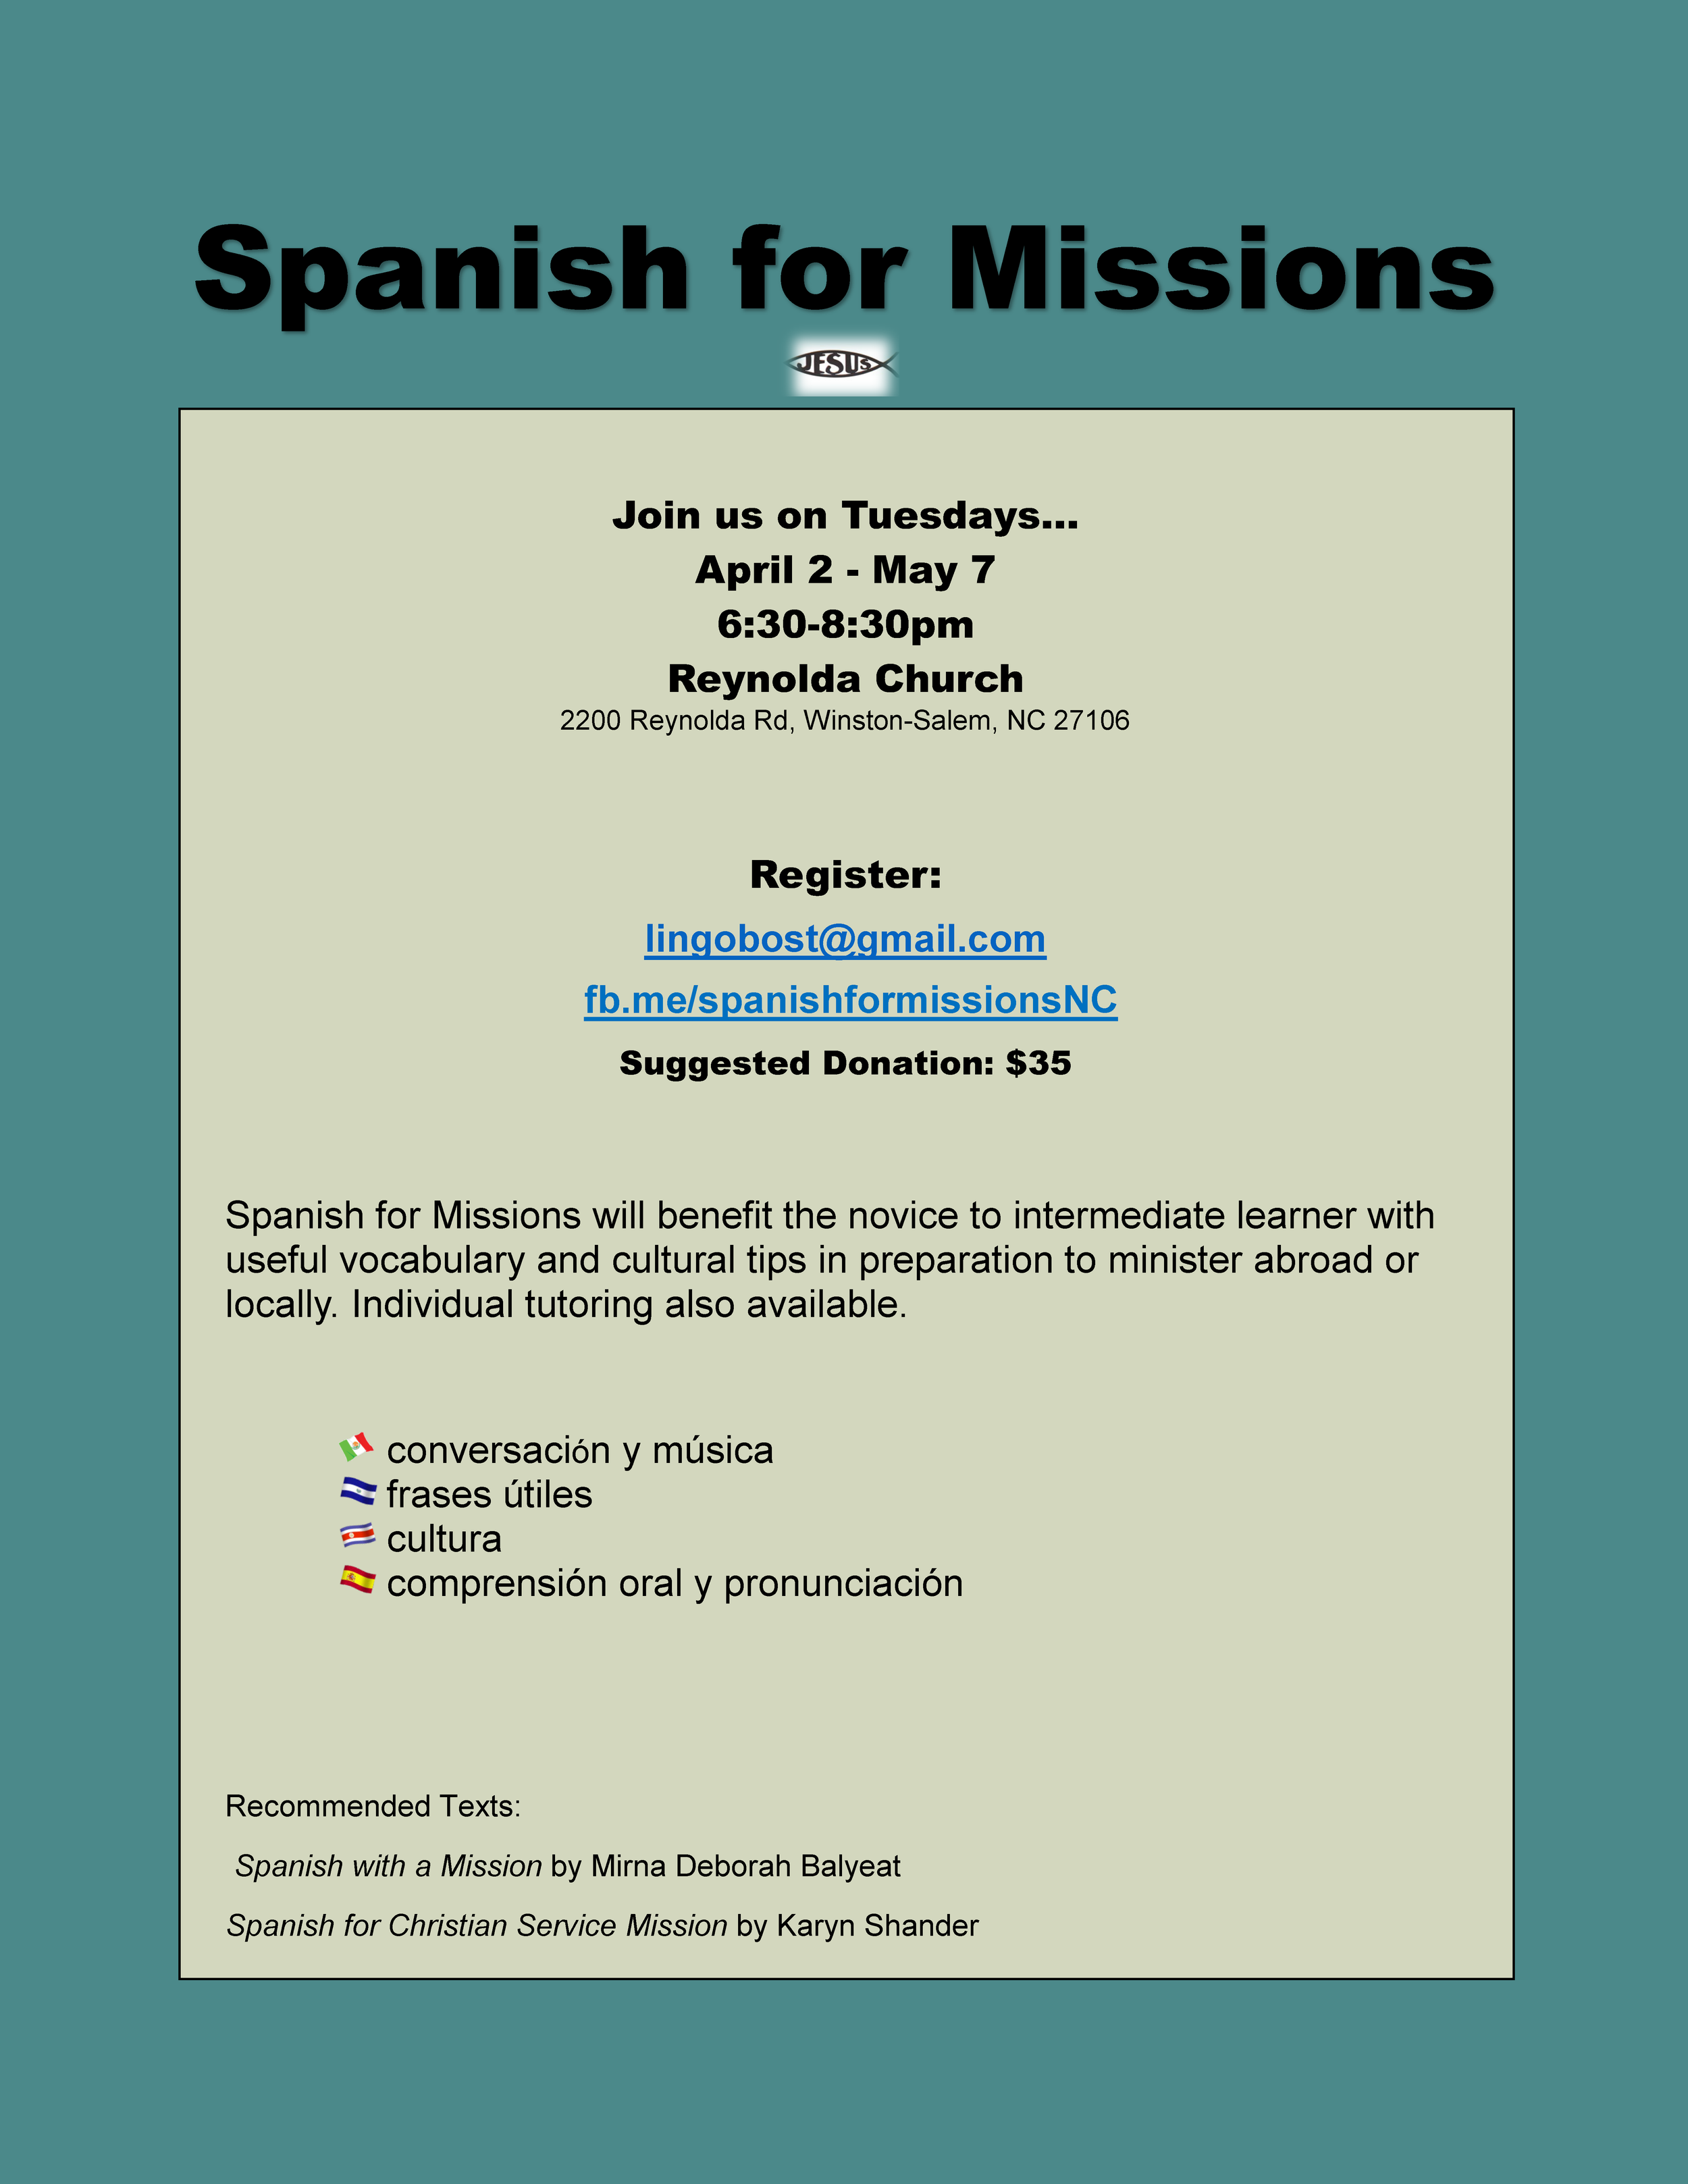 Spanish fof Missions Flyer.png